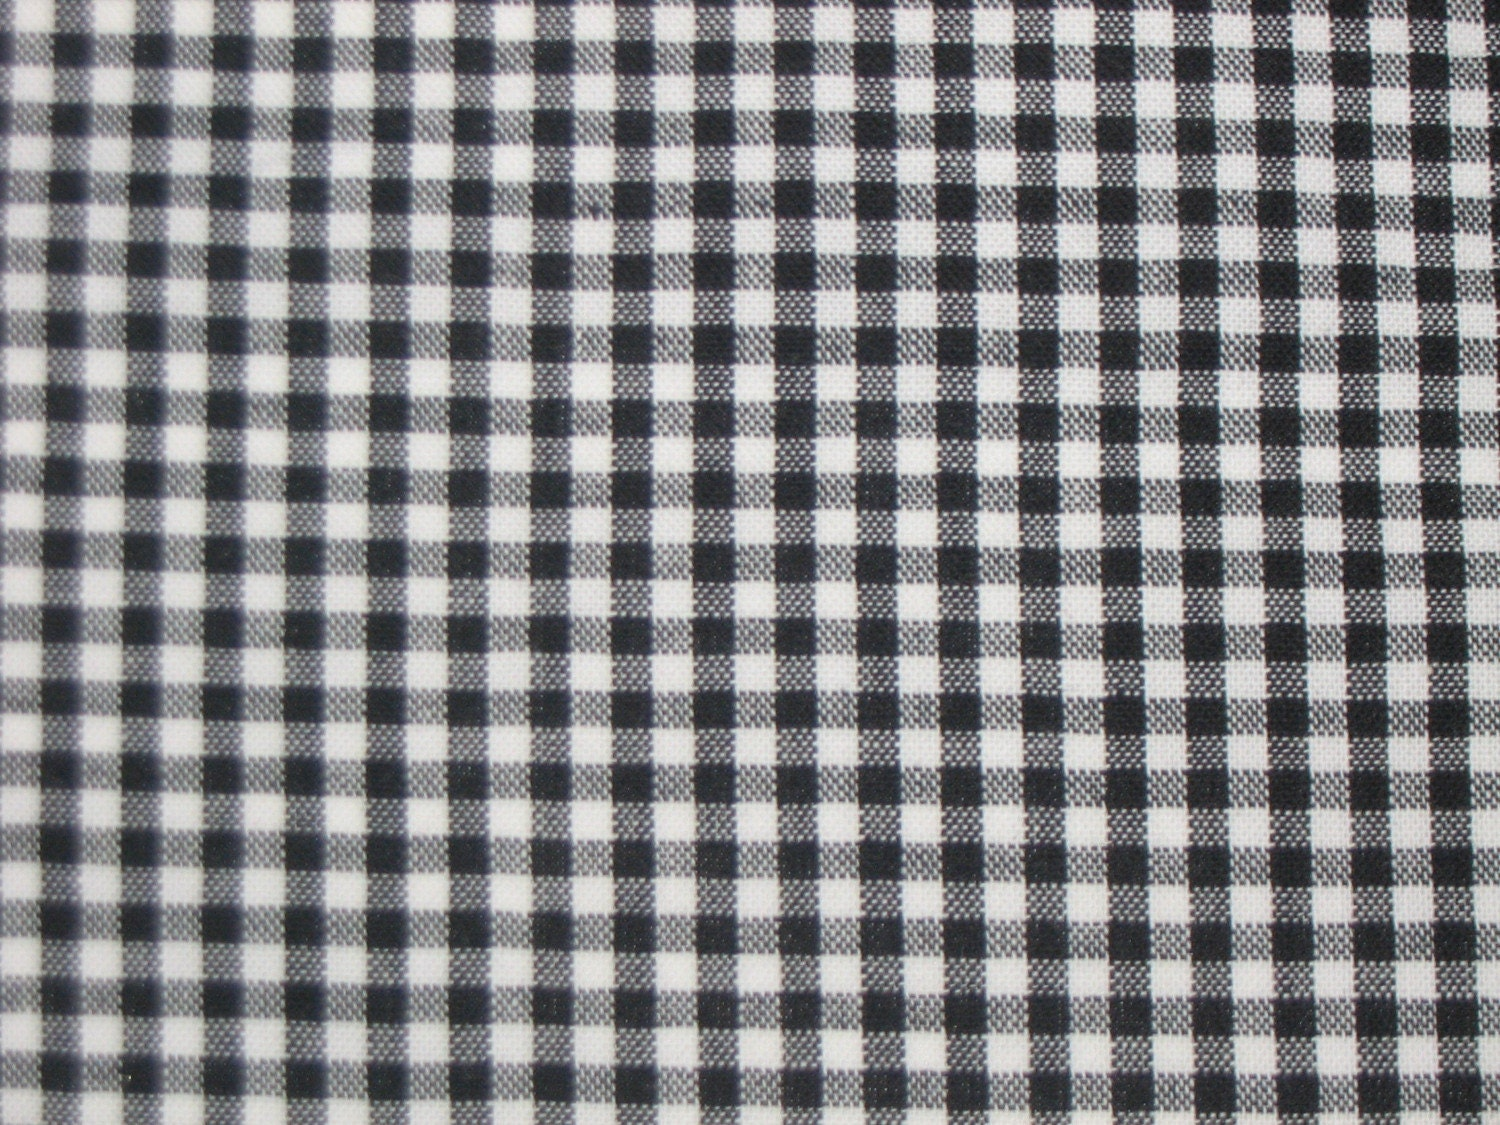 Black white 1 4 inch check gingham all cotton fabric sold for Gingham fabric